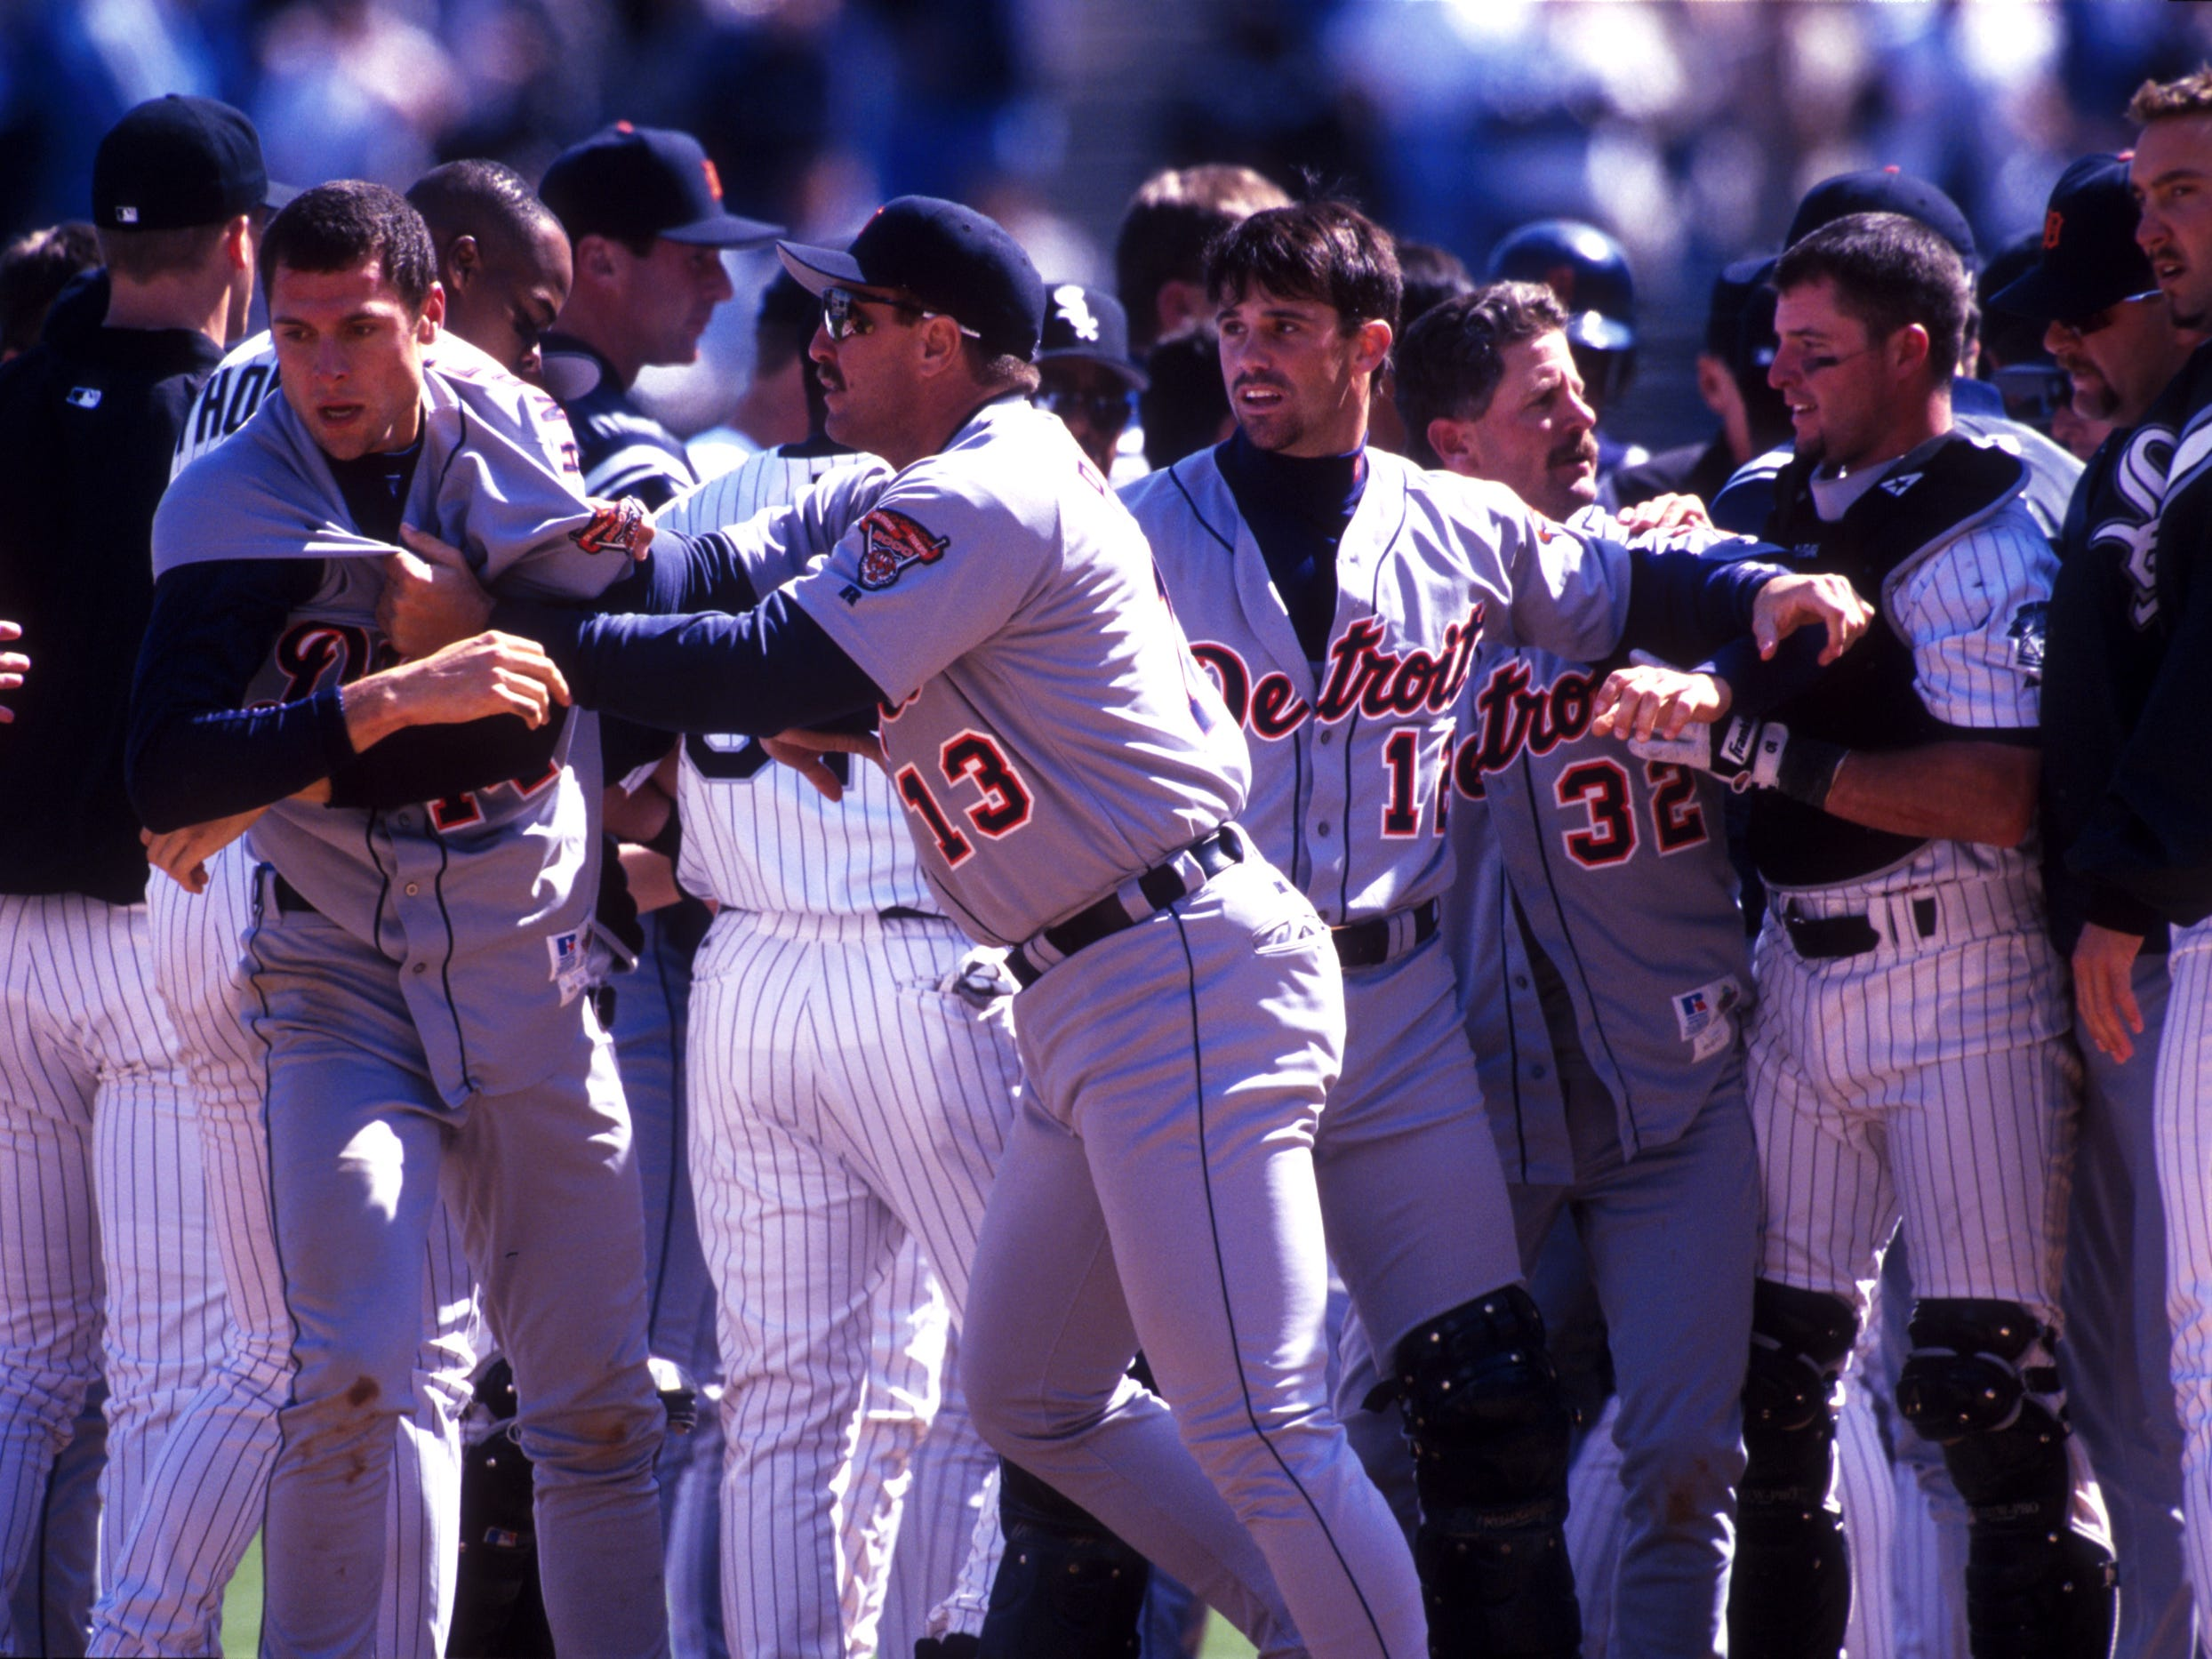 TIGERS-WHITE SOX: It's not that they've done a whole lot of battling in the standings (it seems when one is good, the other is bad, or they're both bad). But they've had some epic brawls over the years, none more memorable than 2000, when they went at it multiple times. It led to Robert Fick being showered with beer by fans, and loving it.